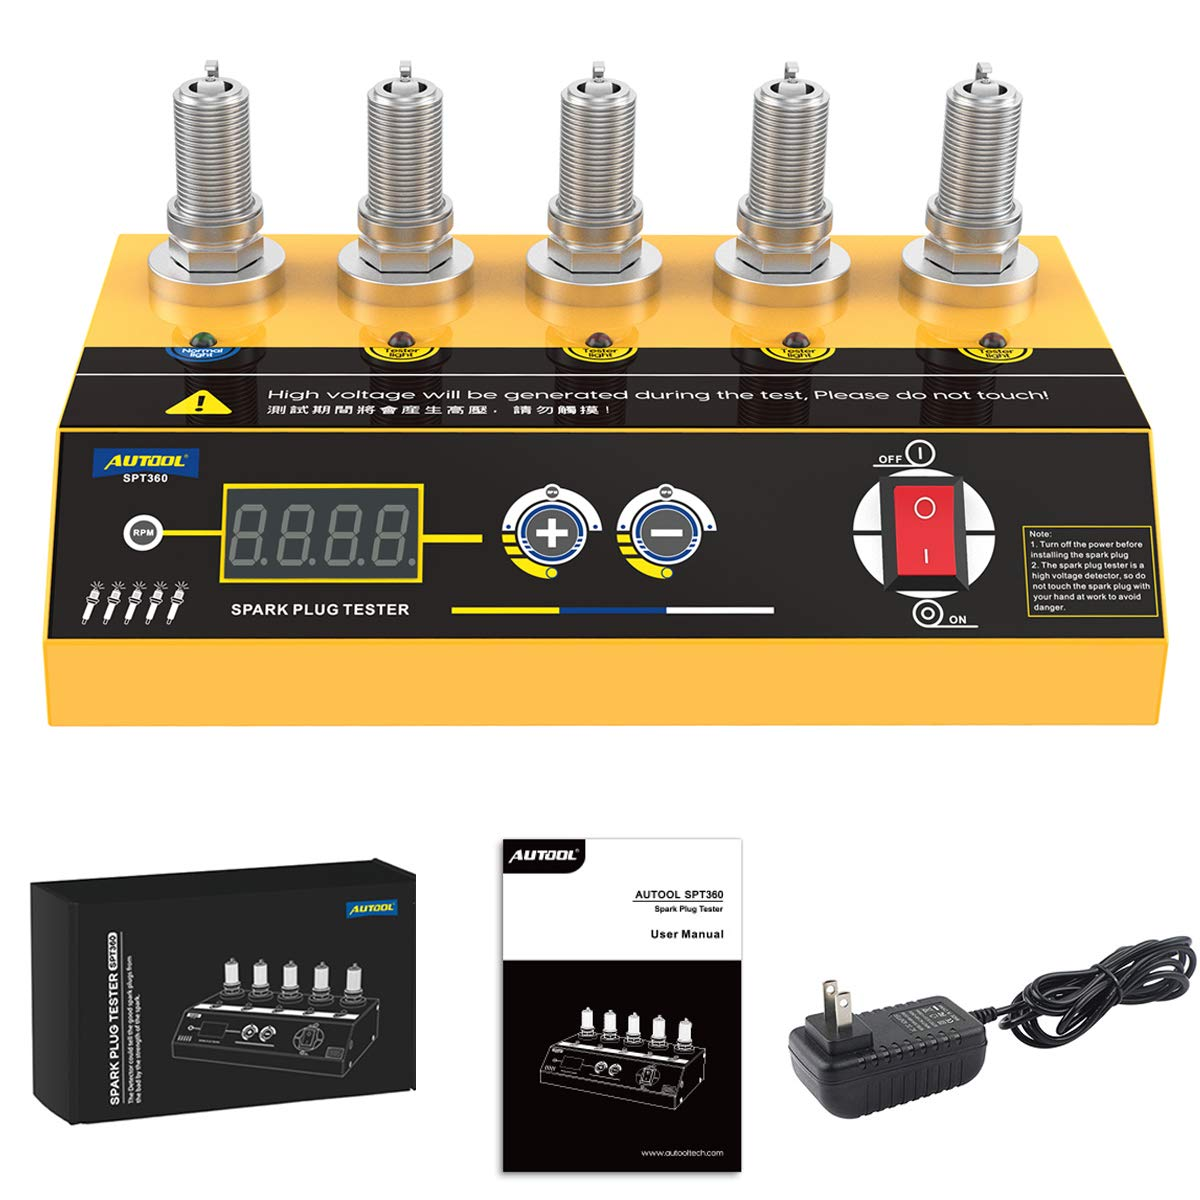 excellence Spark Plug Tester SPT360 with Import 5 Dual Hole Test Adjustable holes